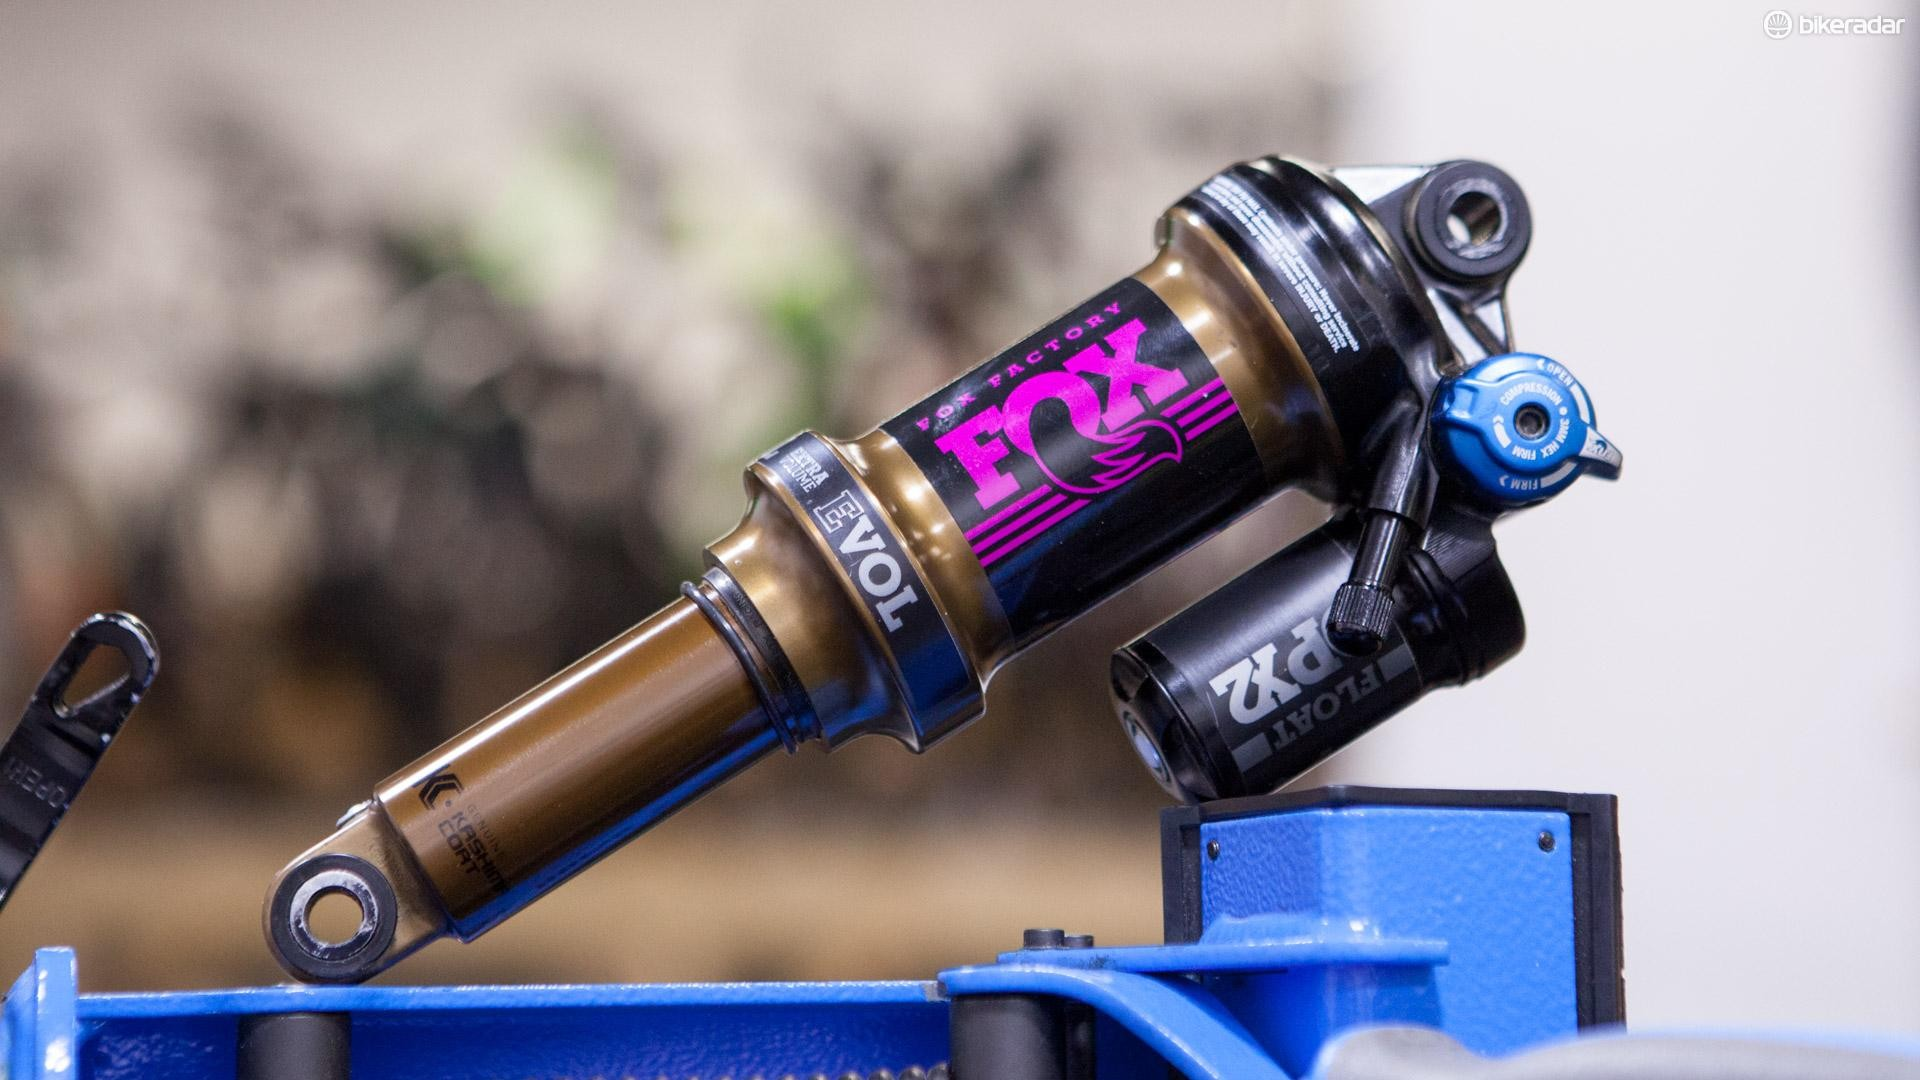 Fox's new Float DPX2 shock comes with high expectations